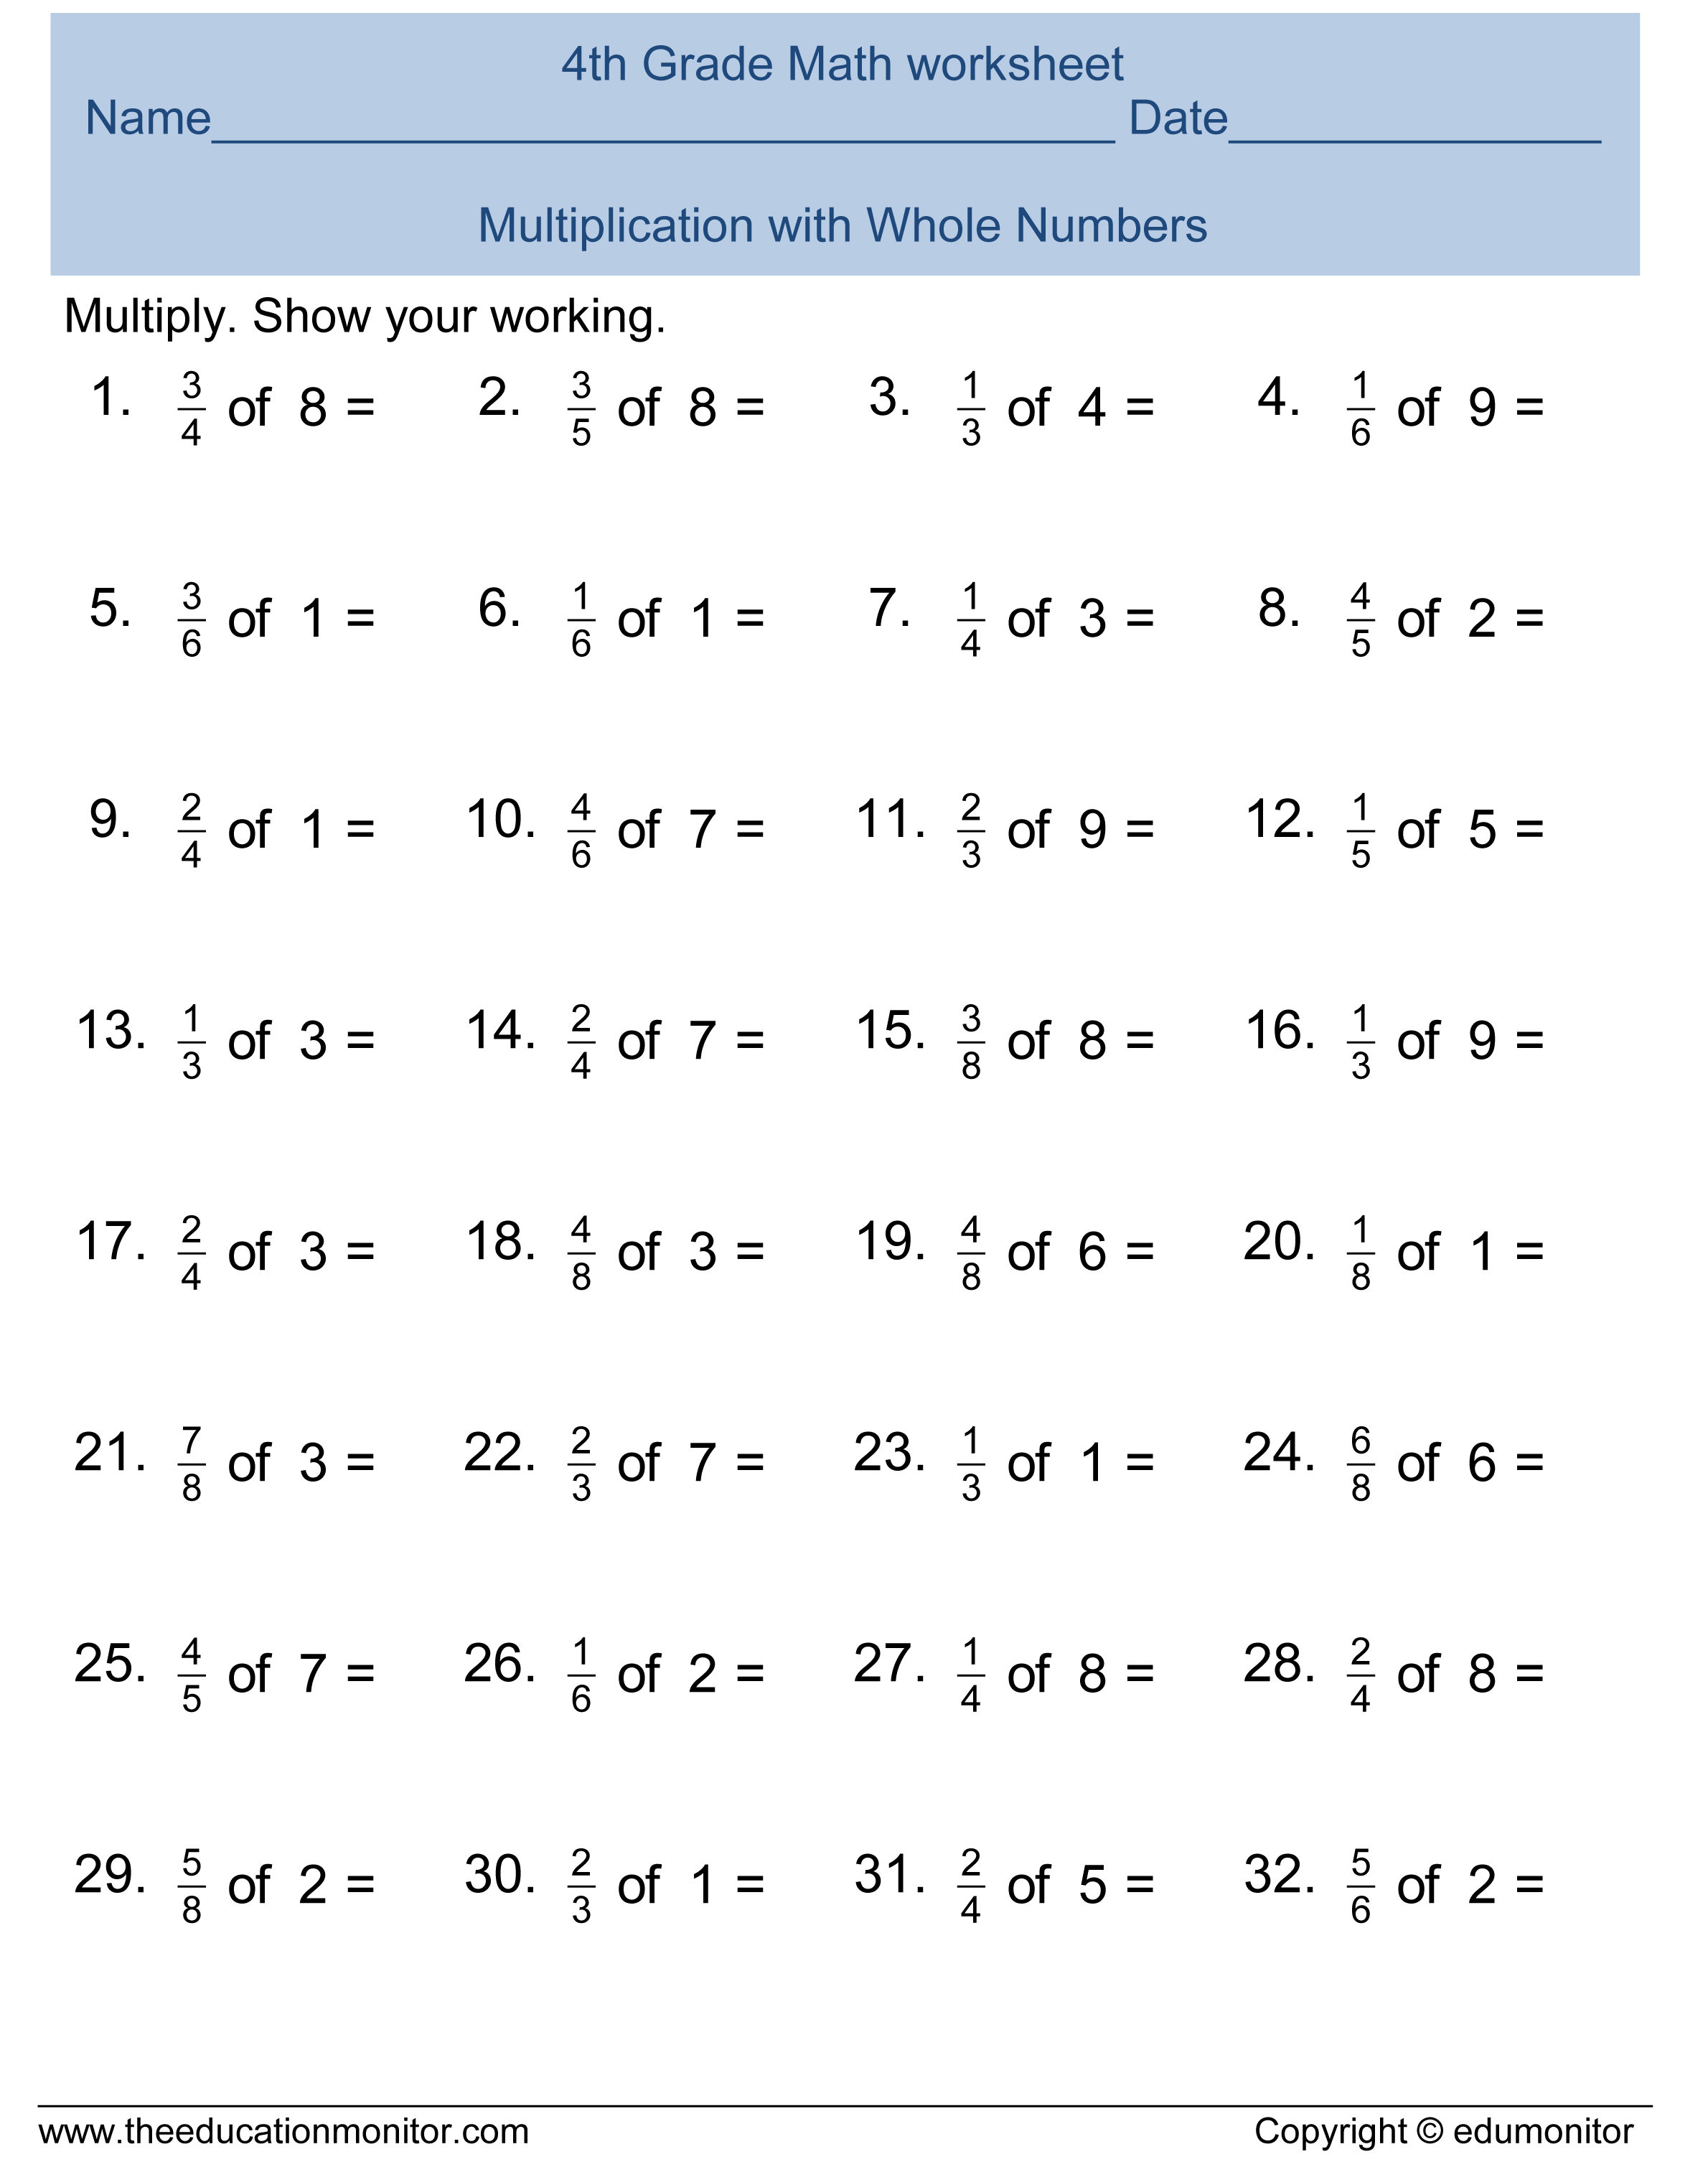 math worksheet : free printable worksheets for 4th grade : 5th Grade Multiplication Worksheets